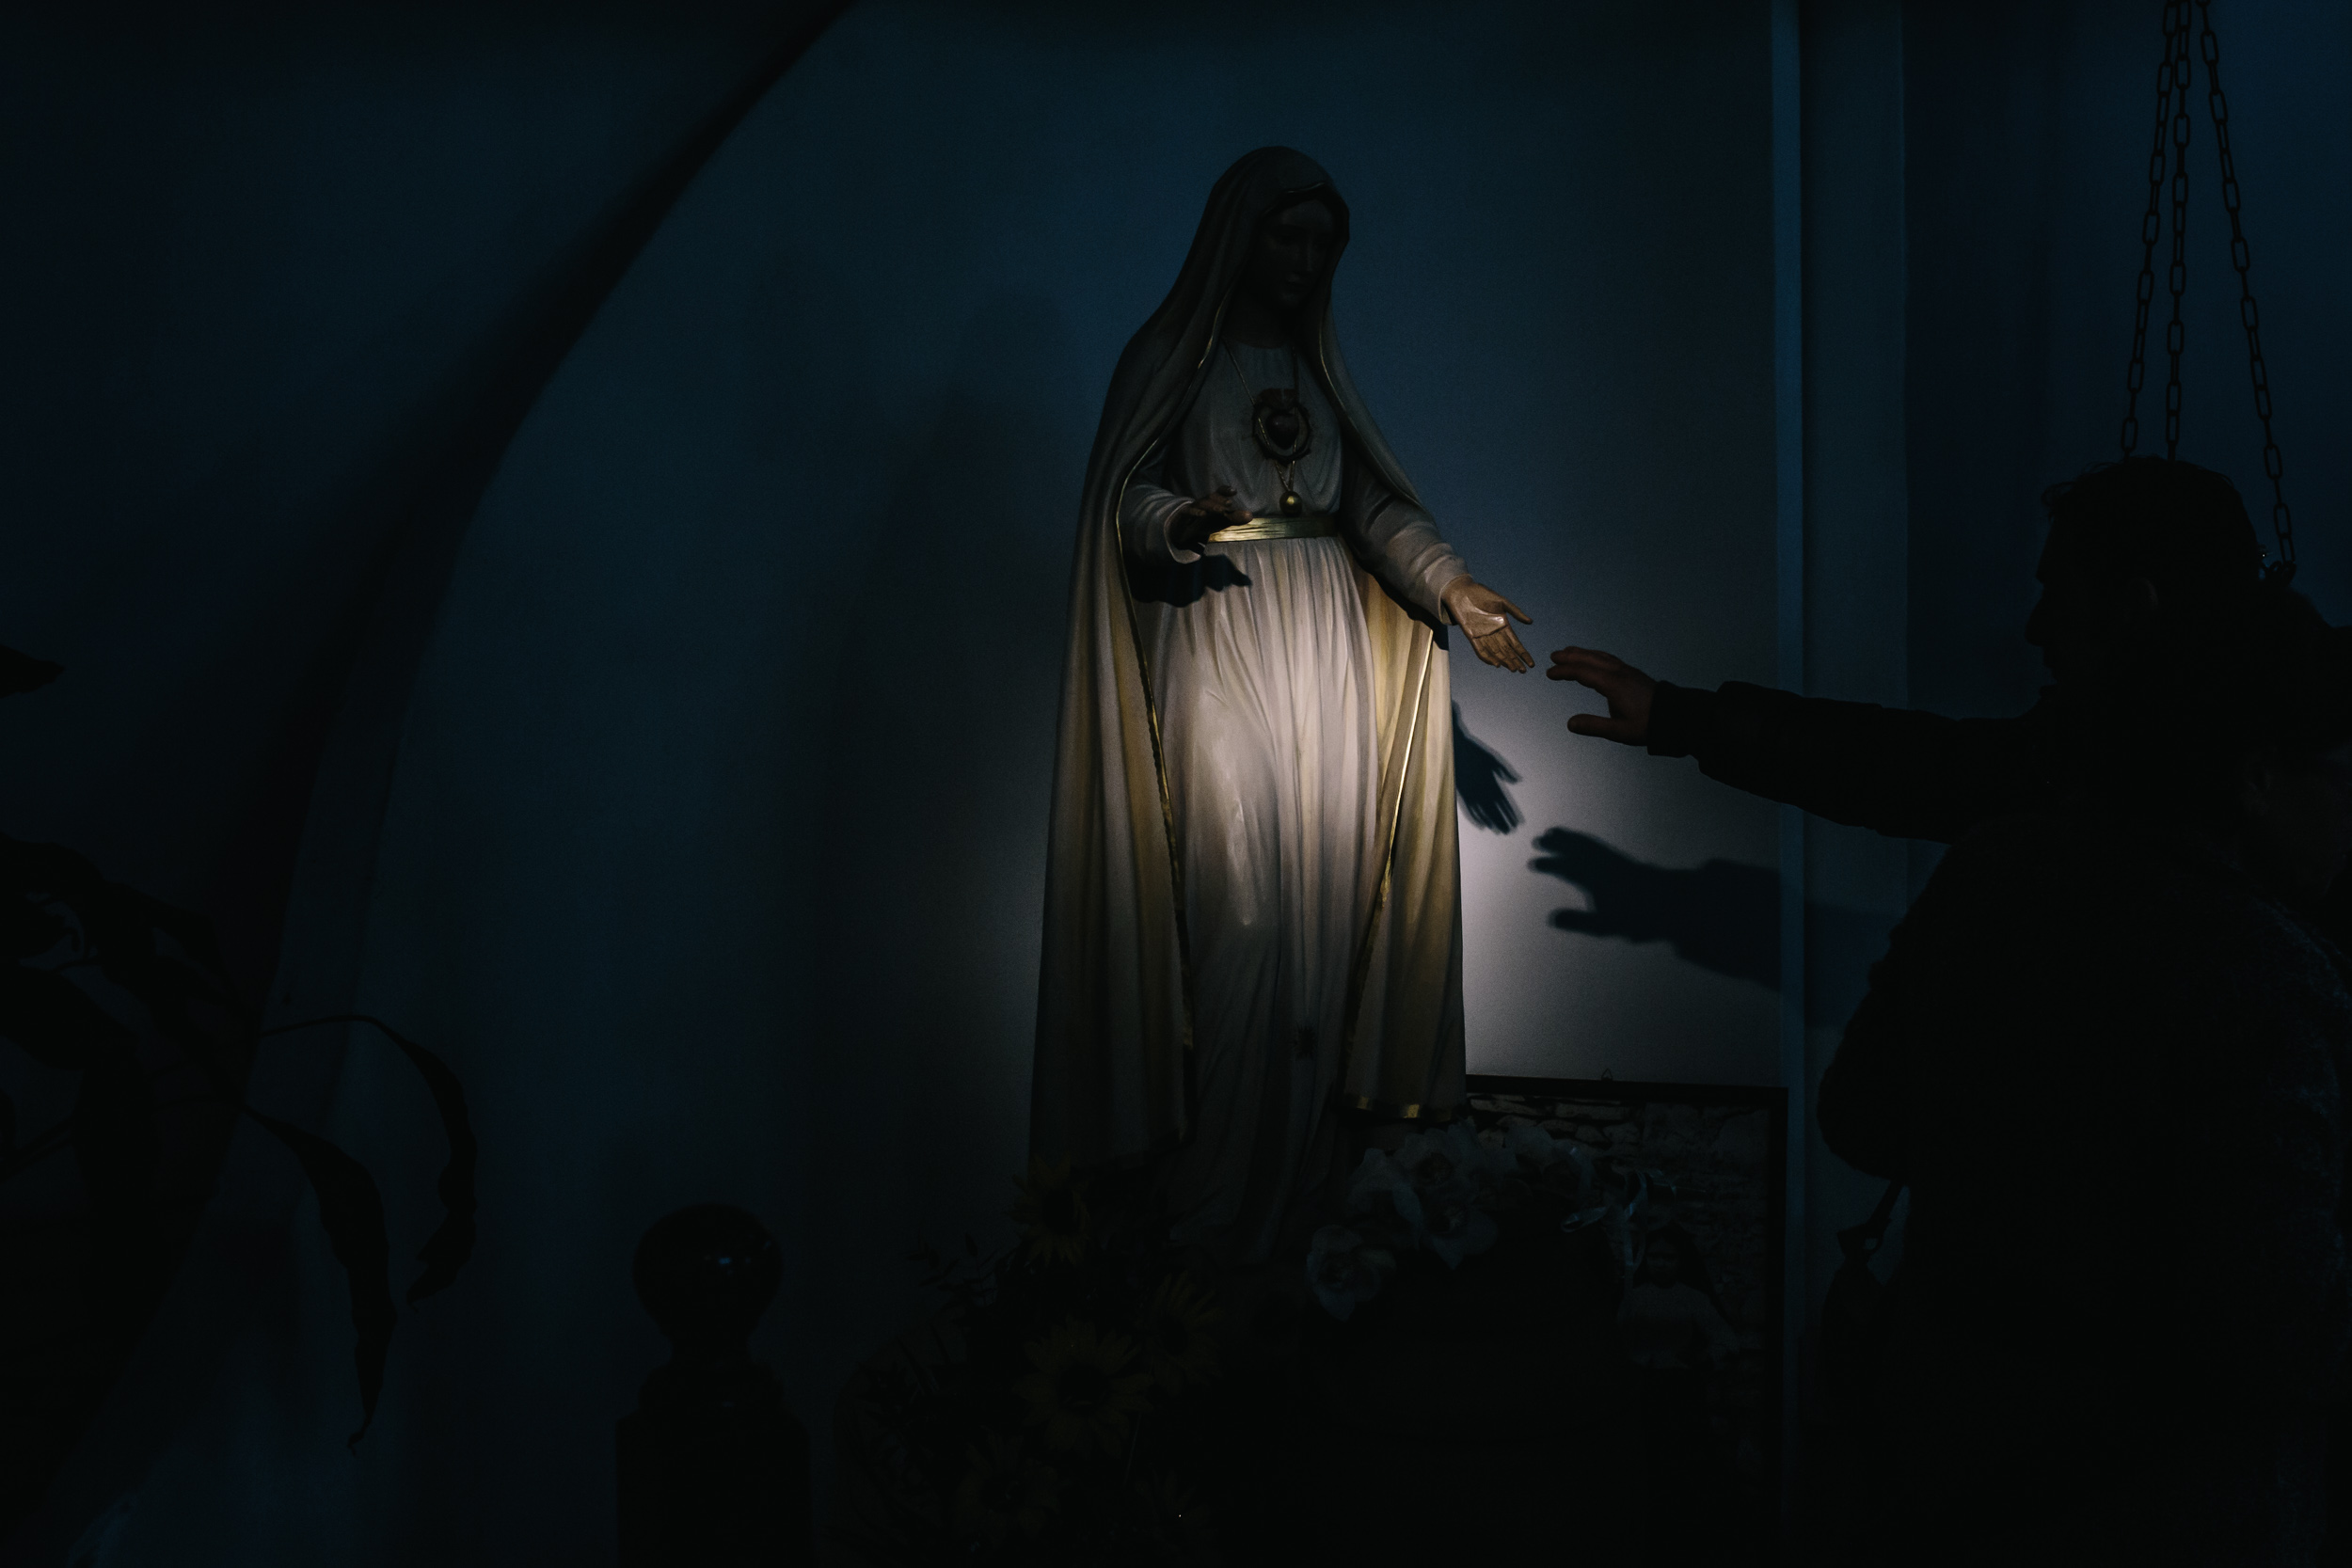 person reaching out to touch hand of Virgin Mary statue at church